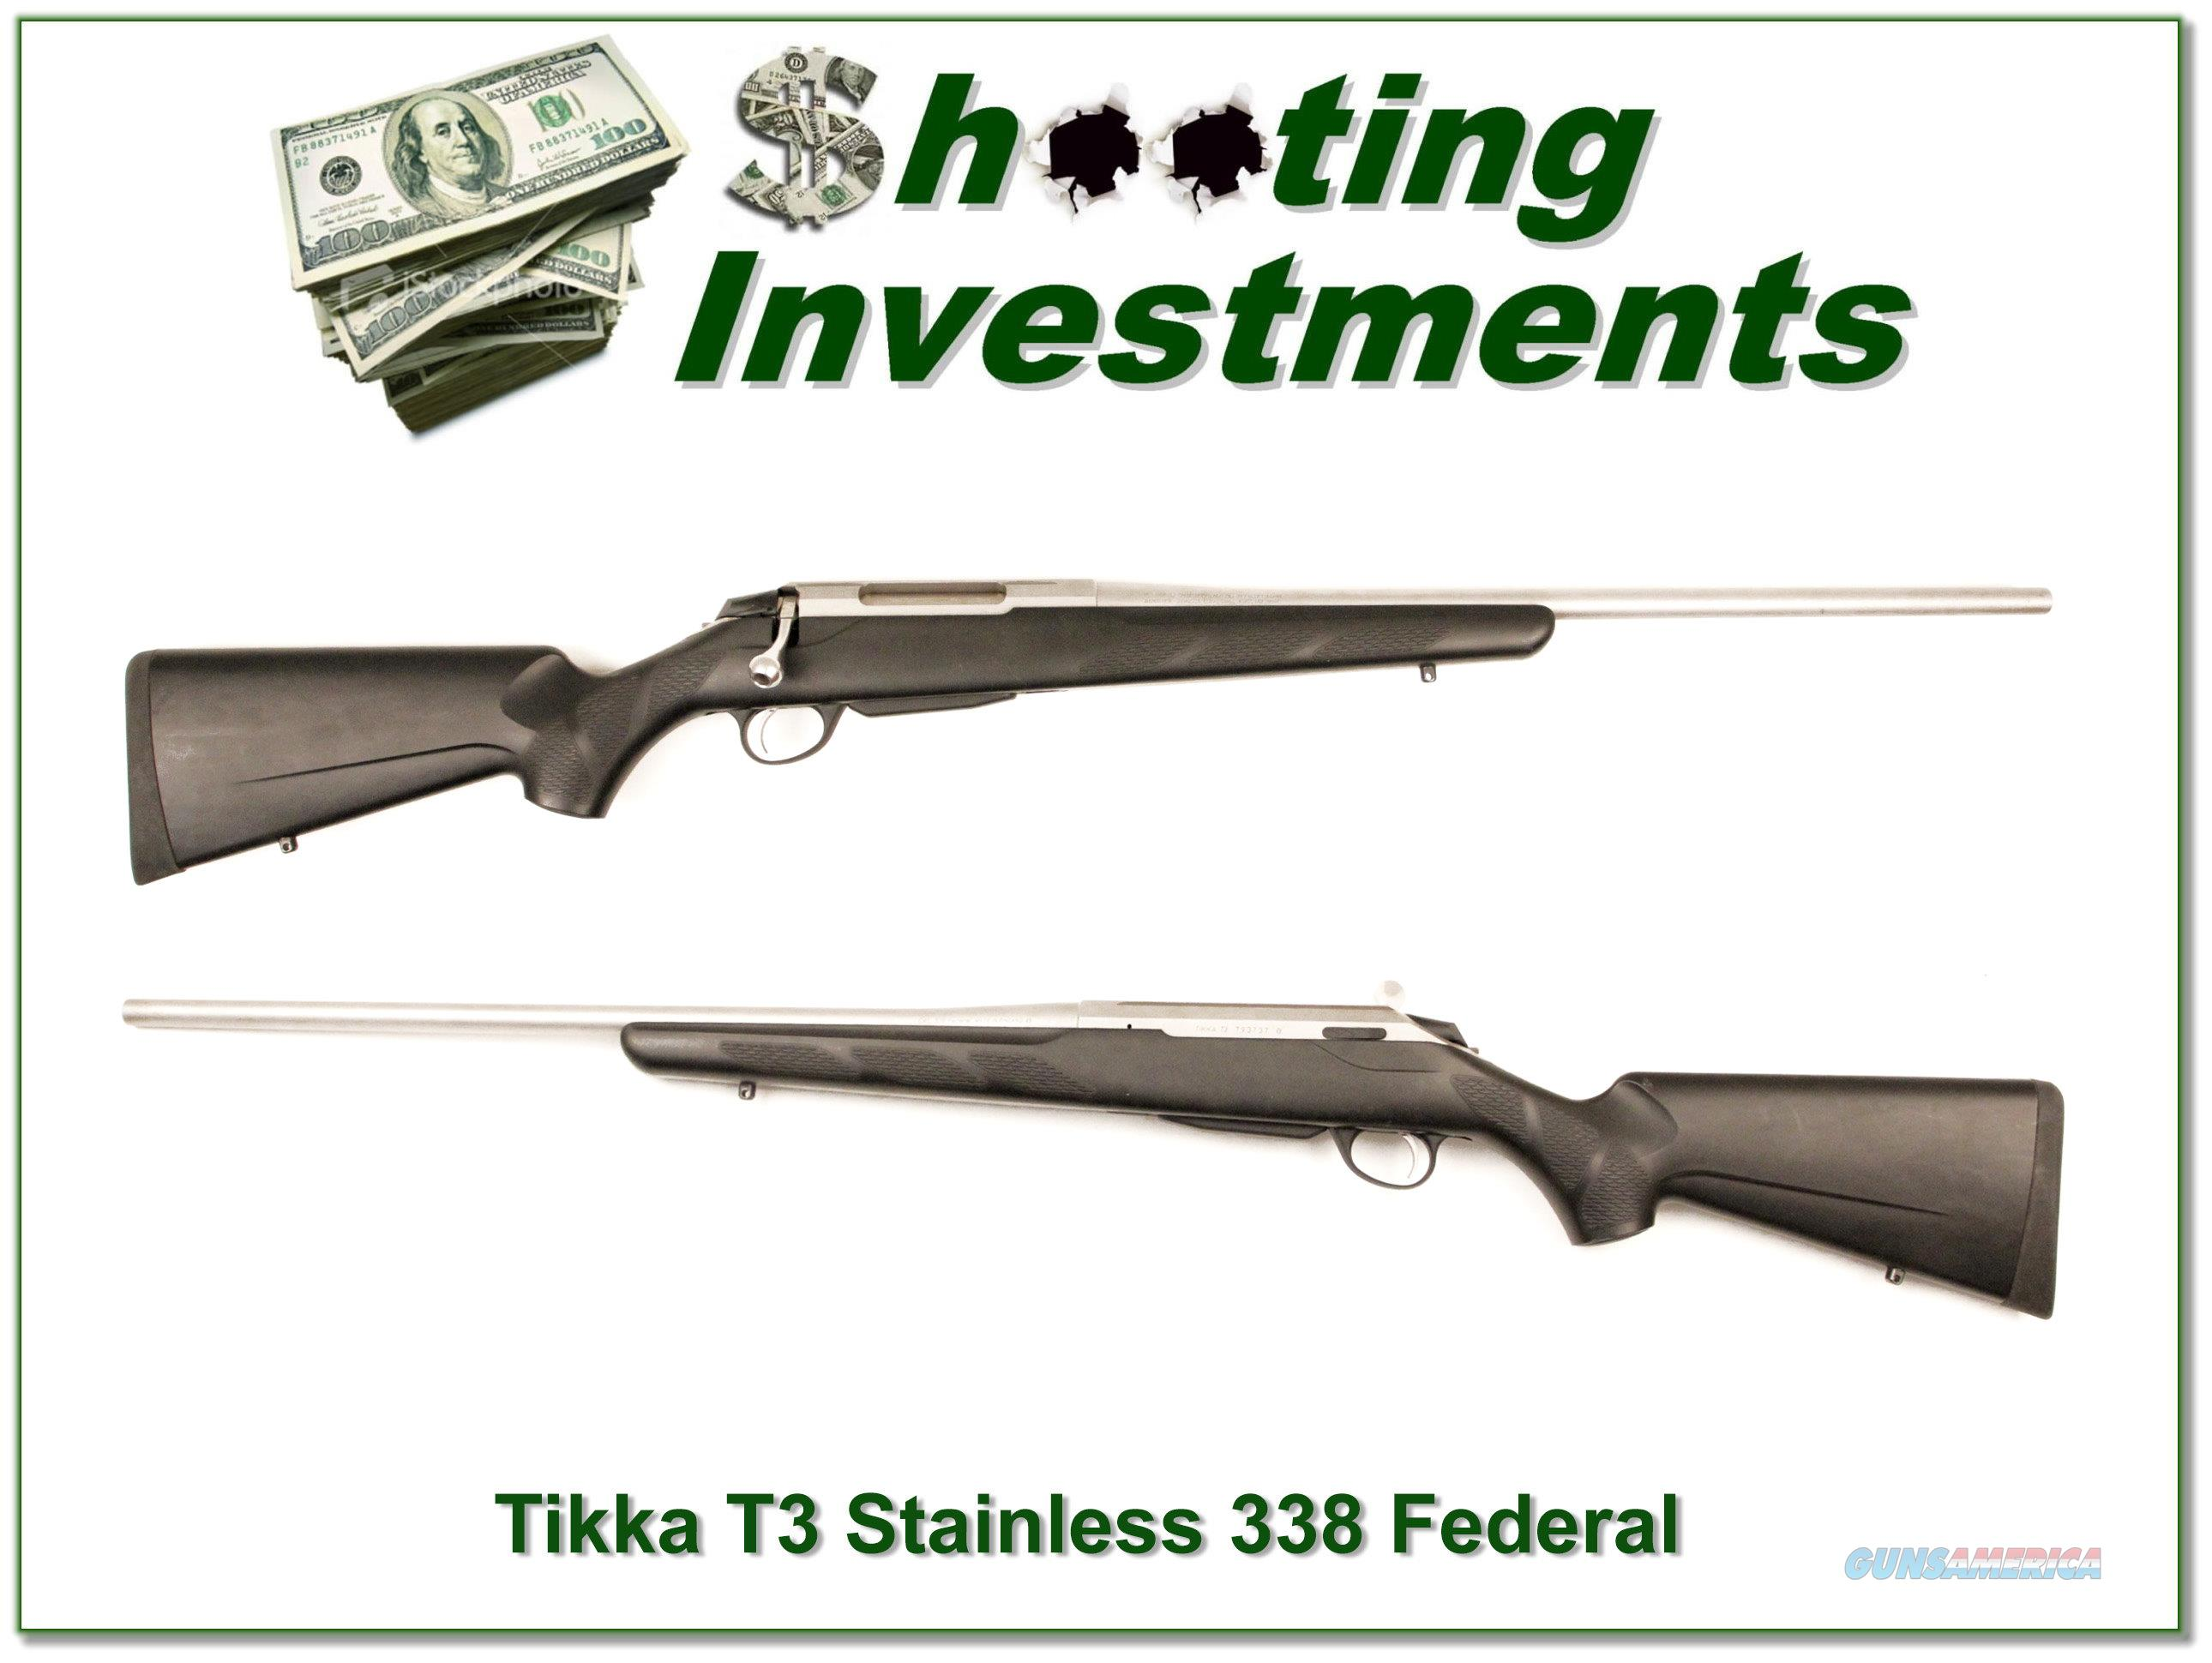 Tikka T3 Stainless in hard to find 338 Federal  Guns > Rifles > Tikka Rifles > T3